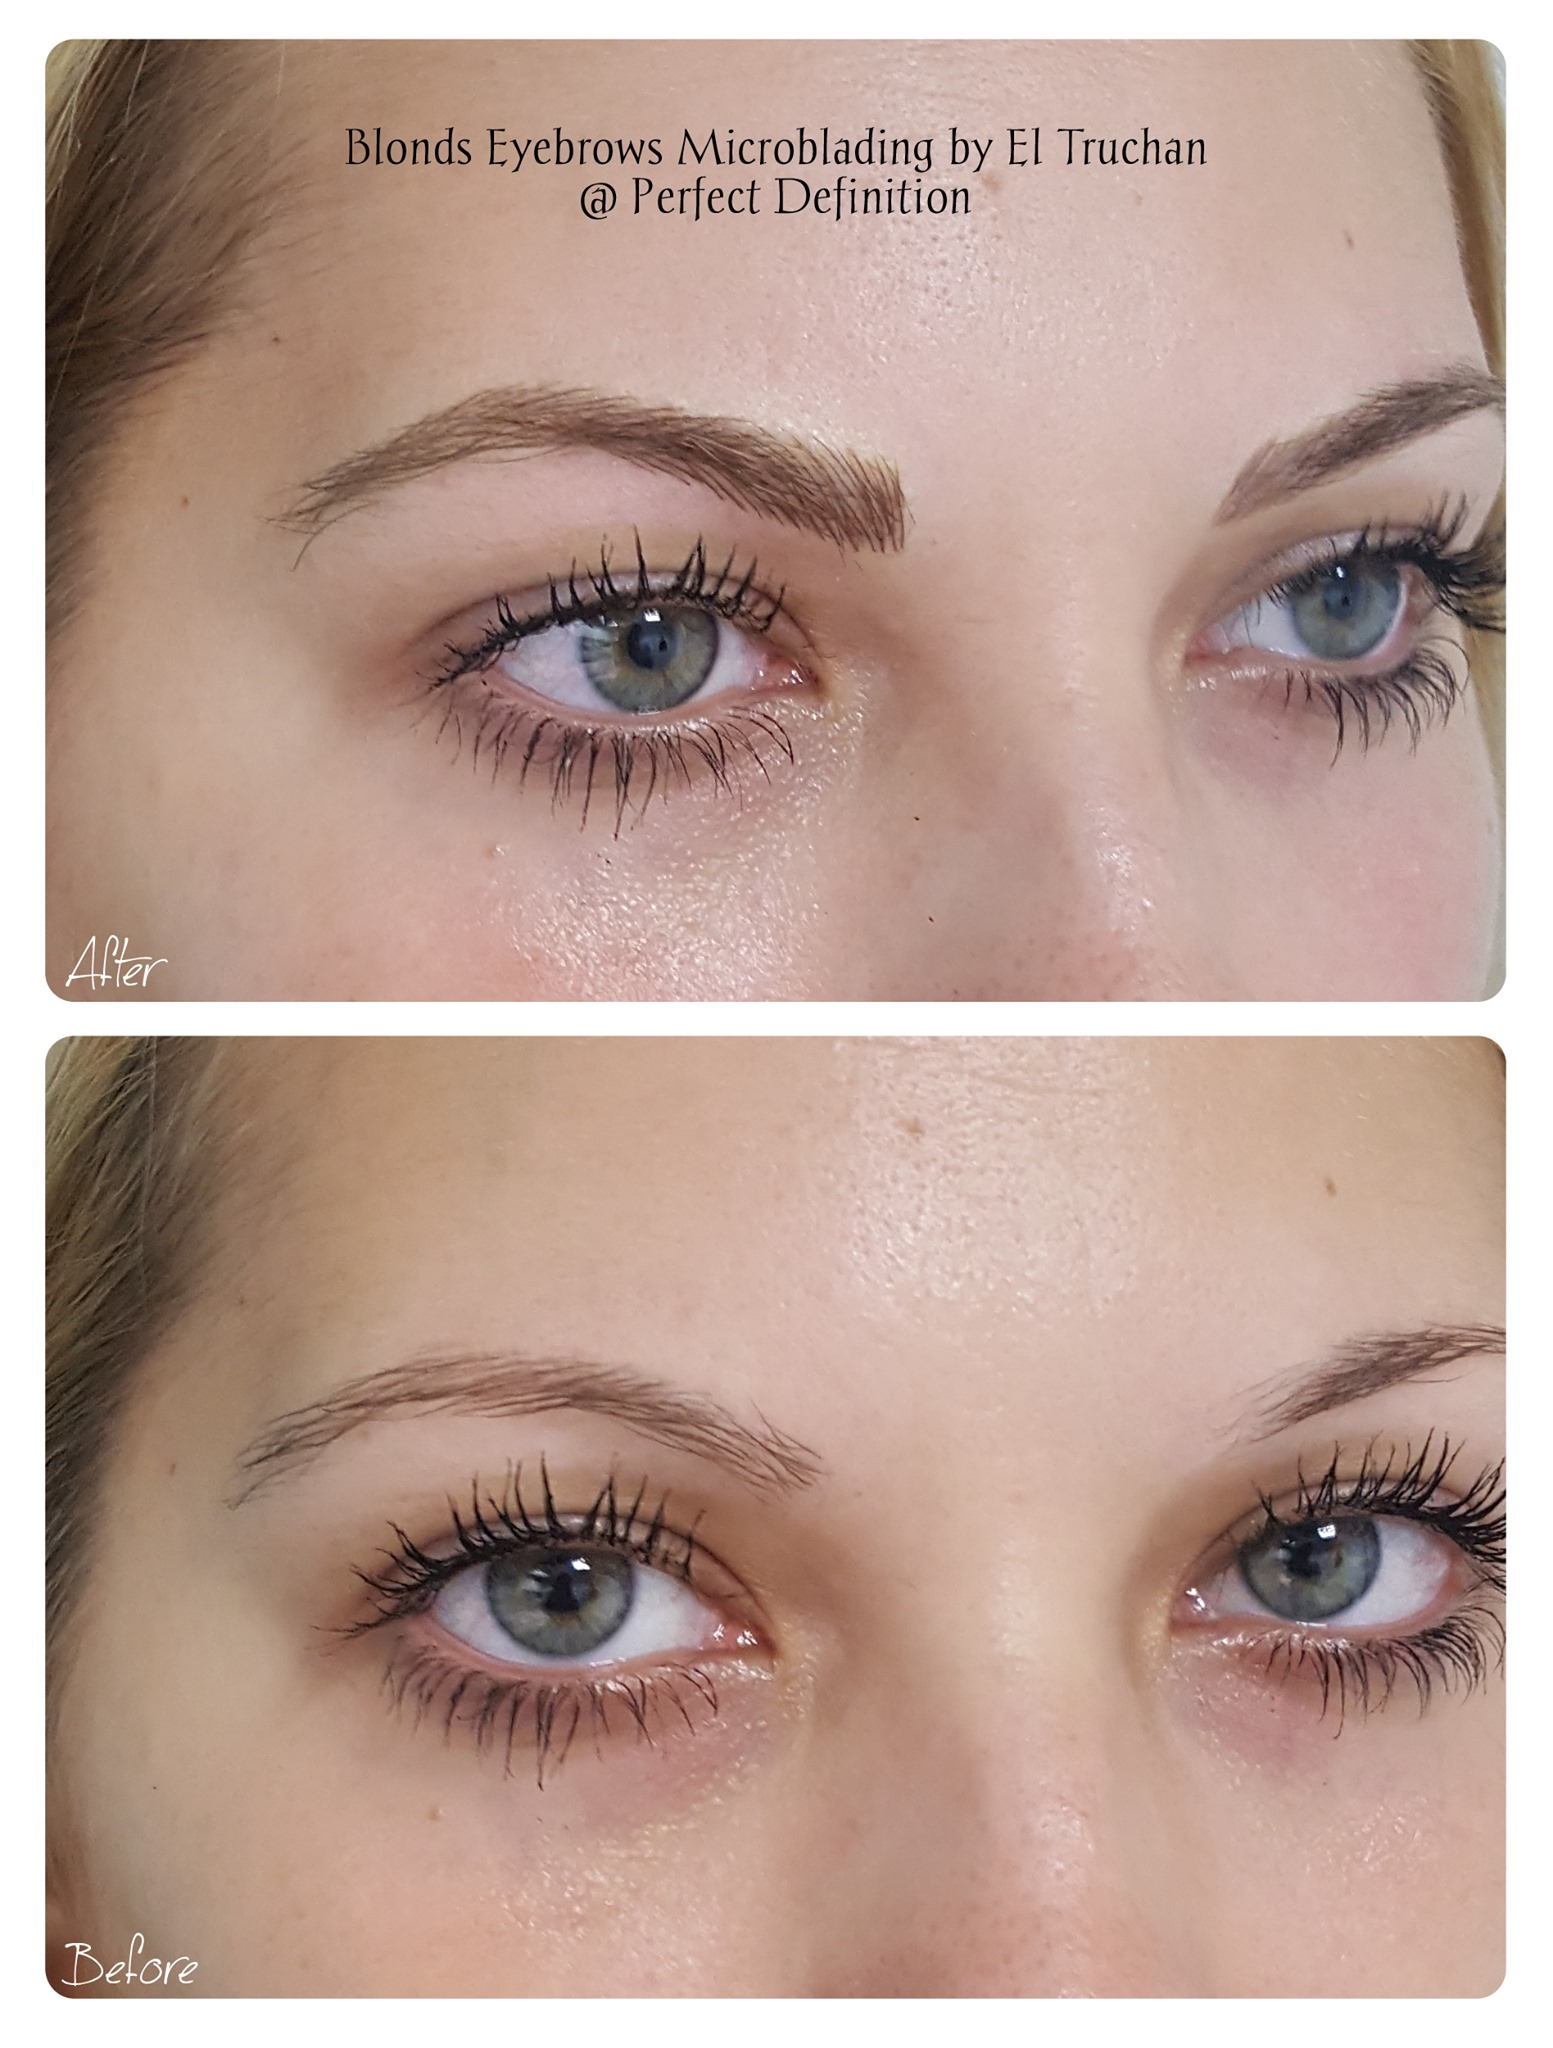 Blondes Eyebrows Microblading by El Truc